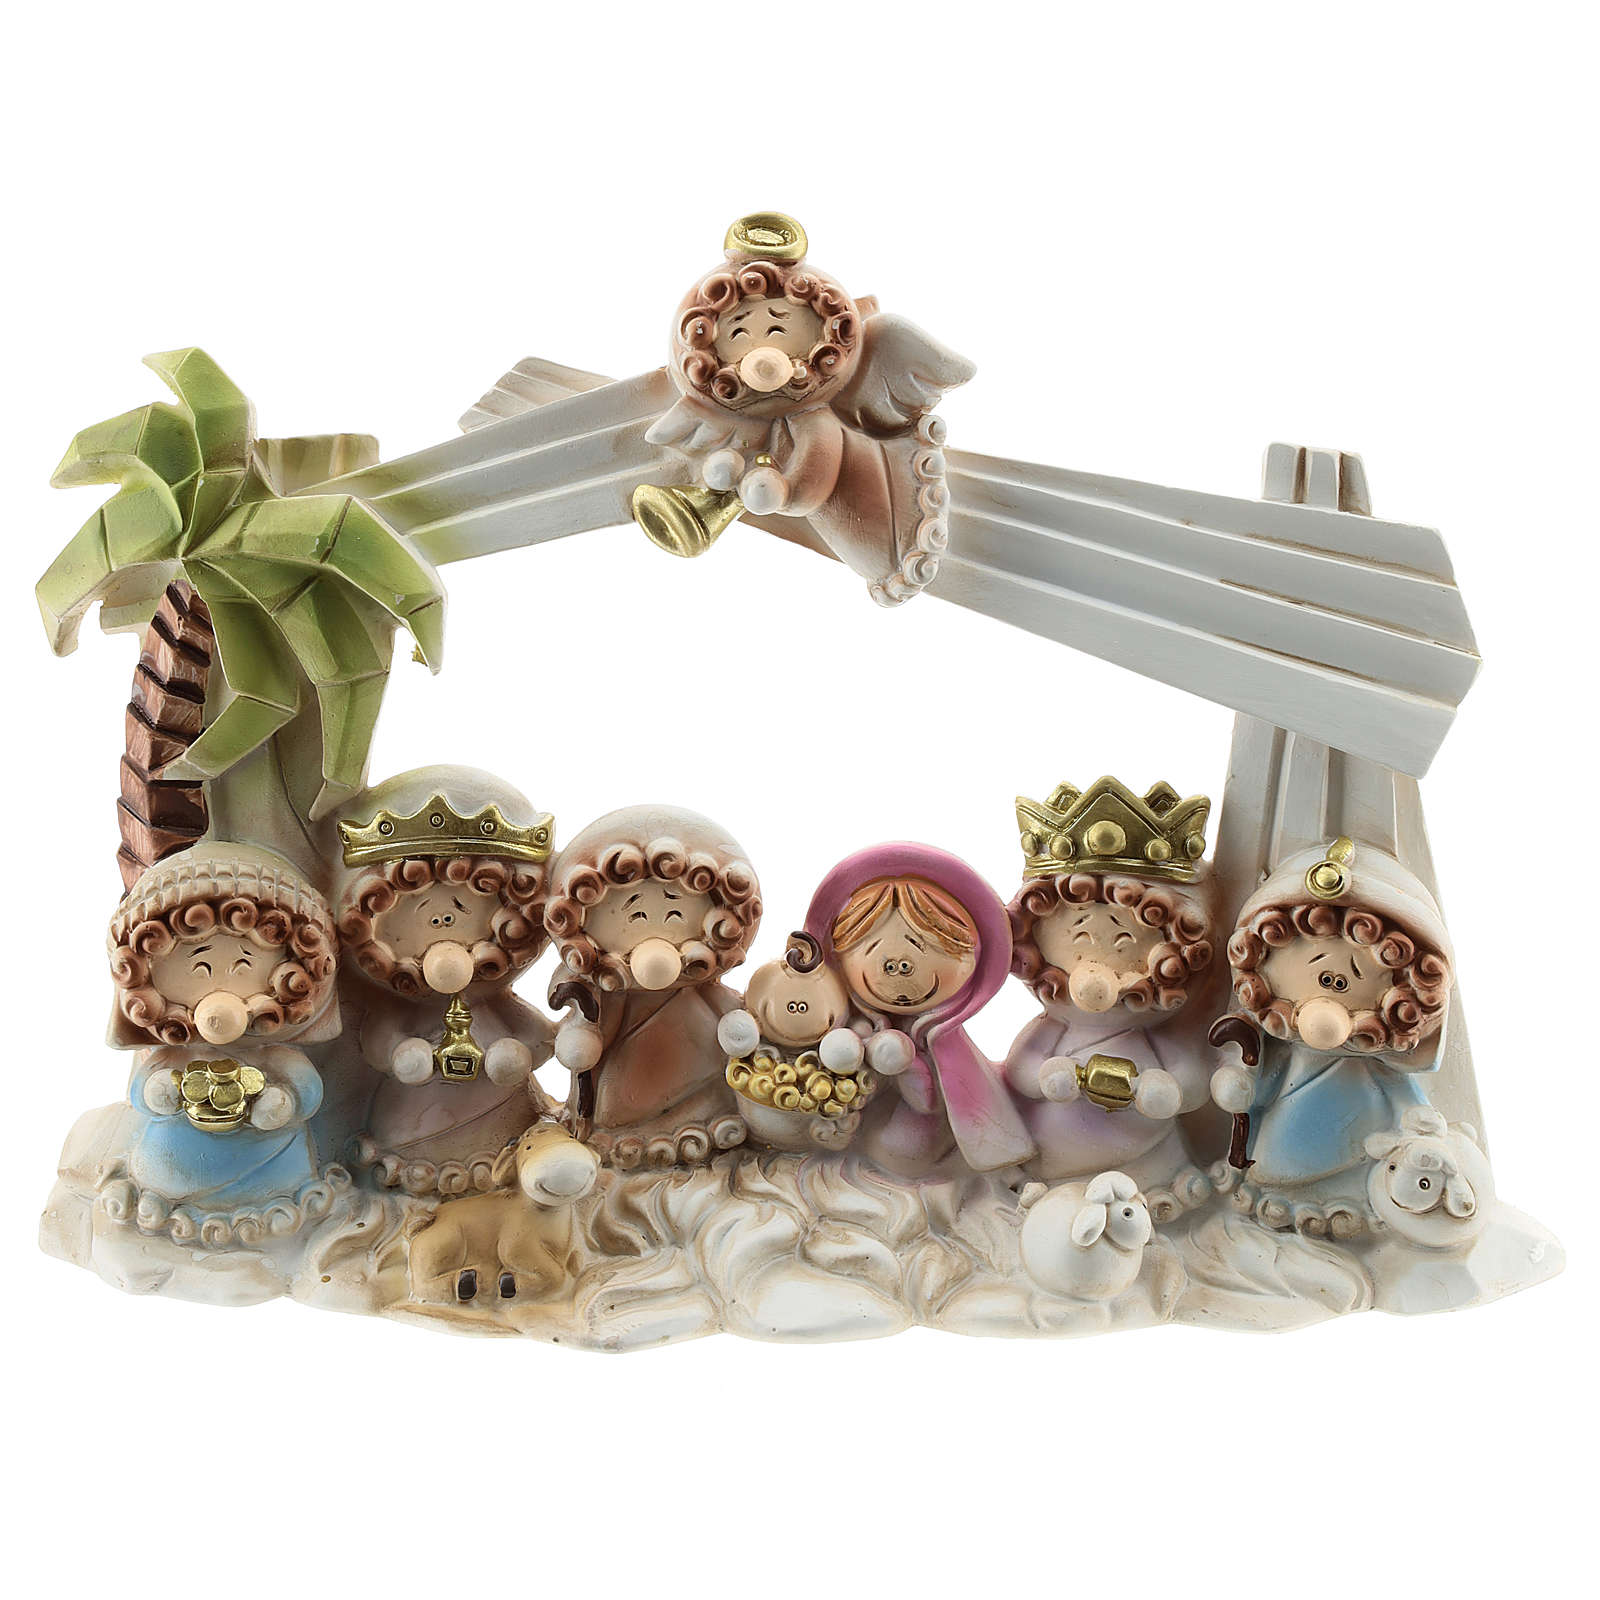 Nativity scene with star and roof 10 characters, children's line 20x15 cm 4